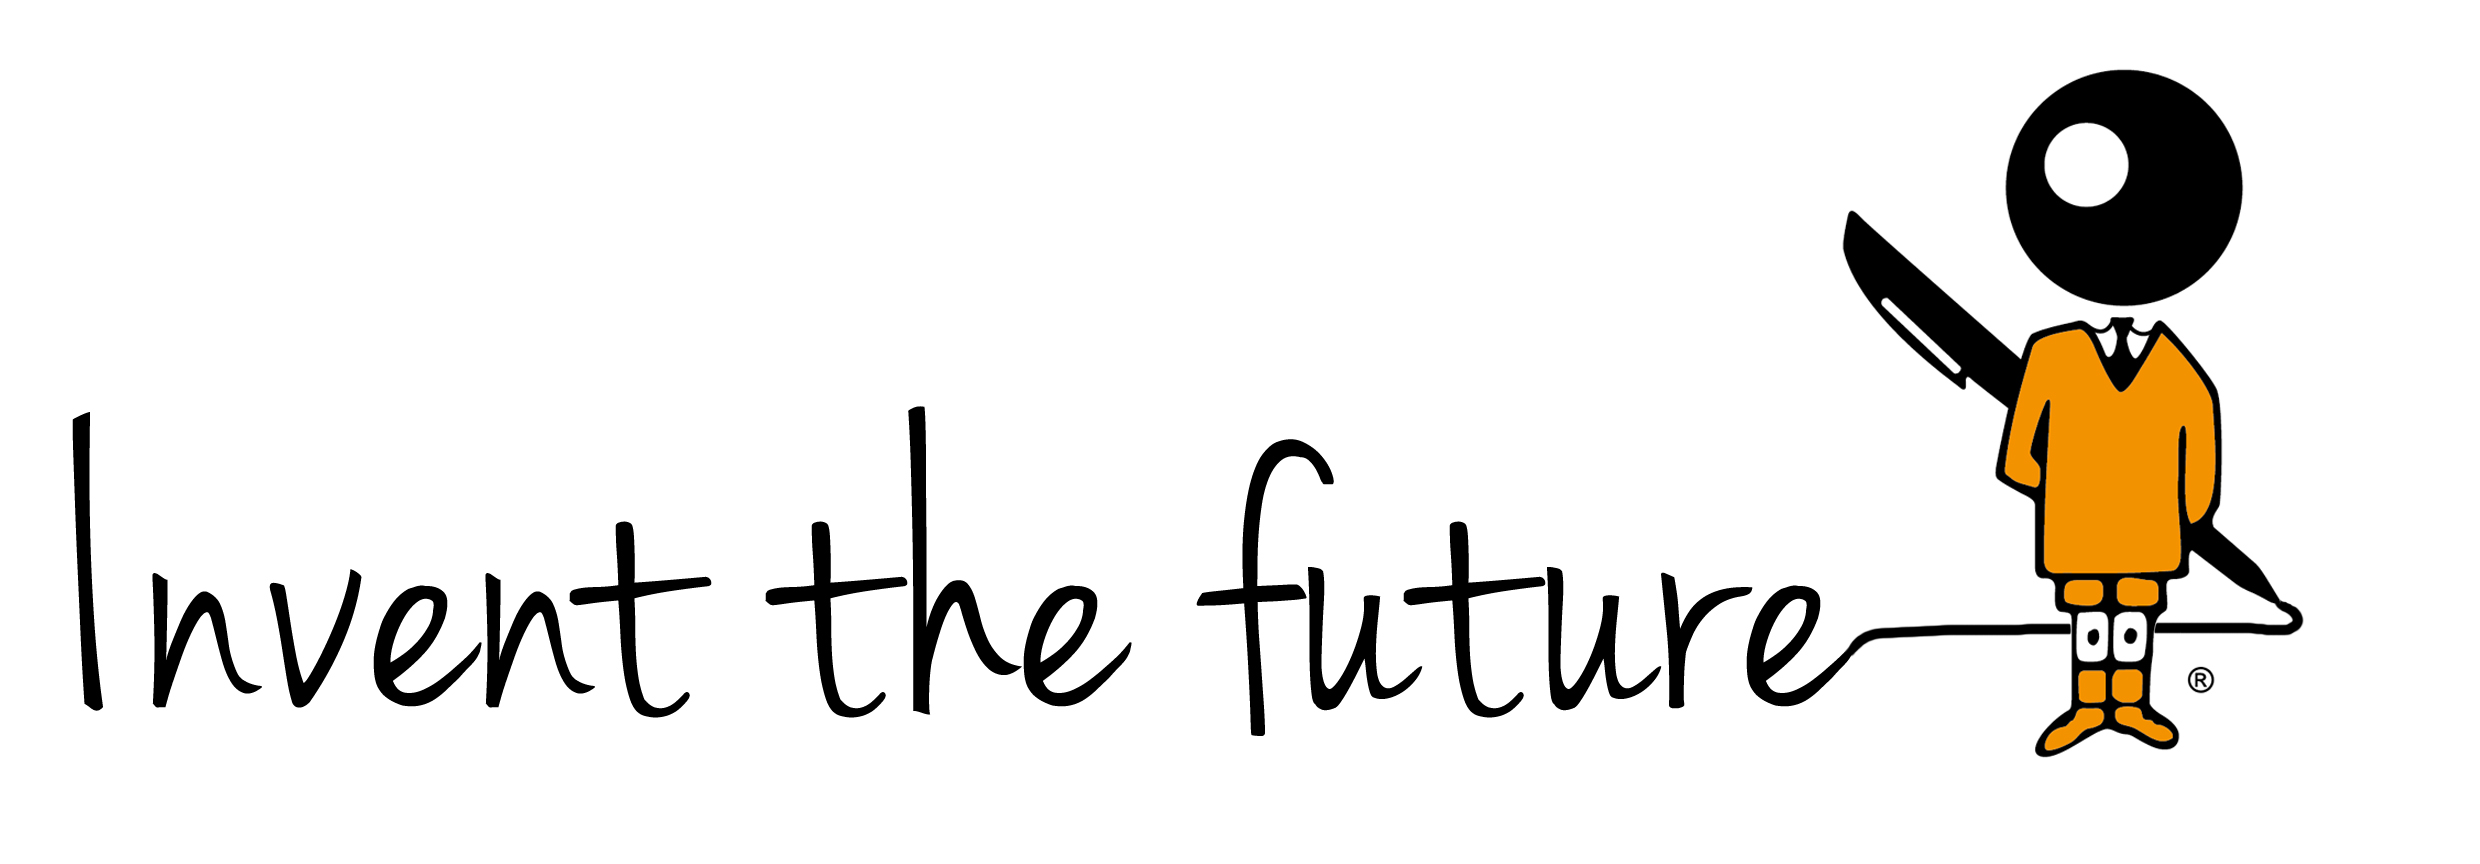 invent the future logo